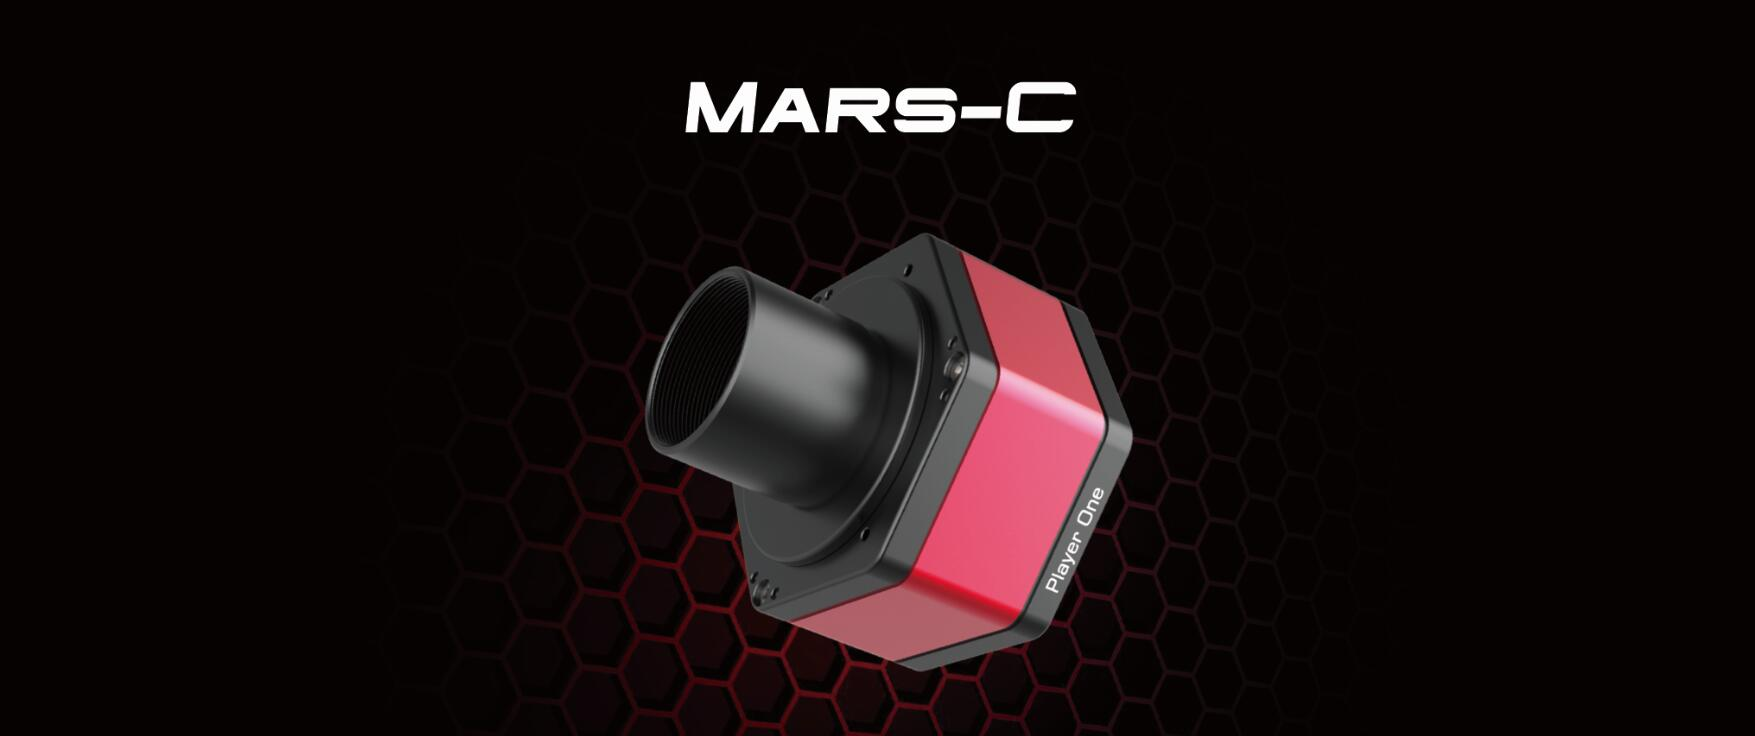 Mars-C Camera (IMX462) released in January